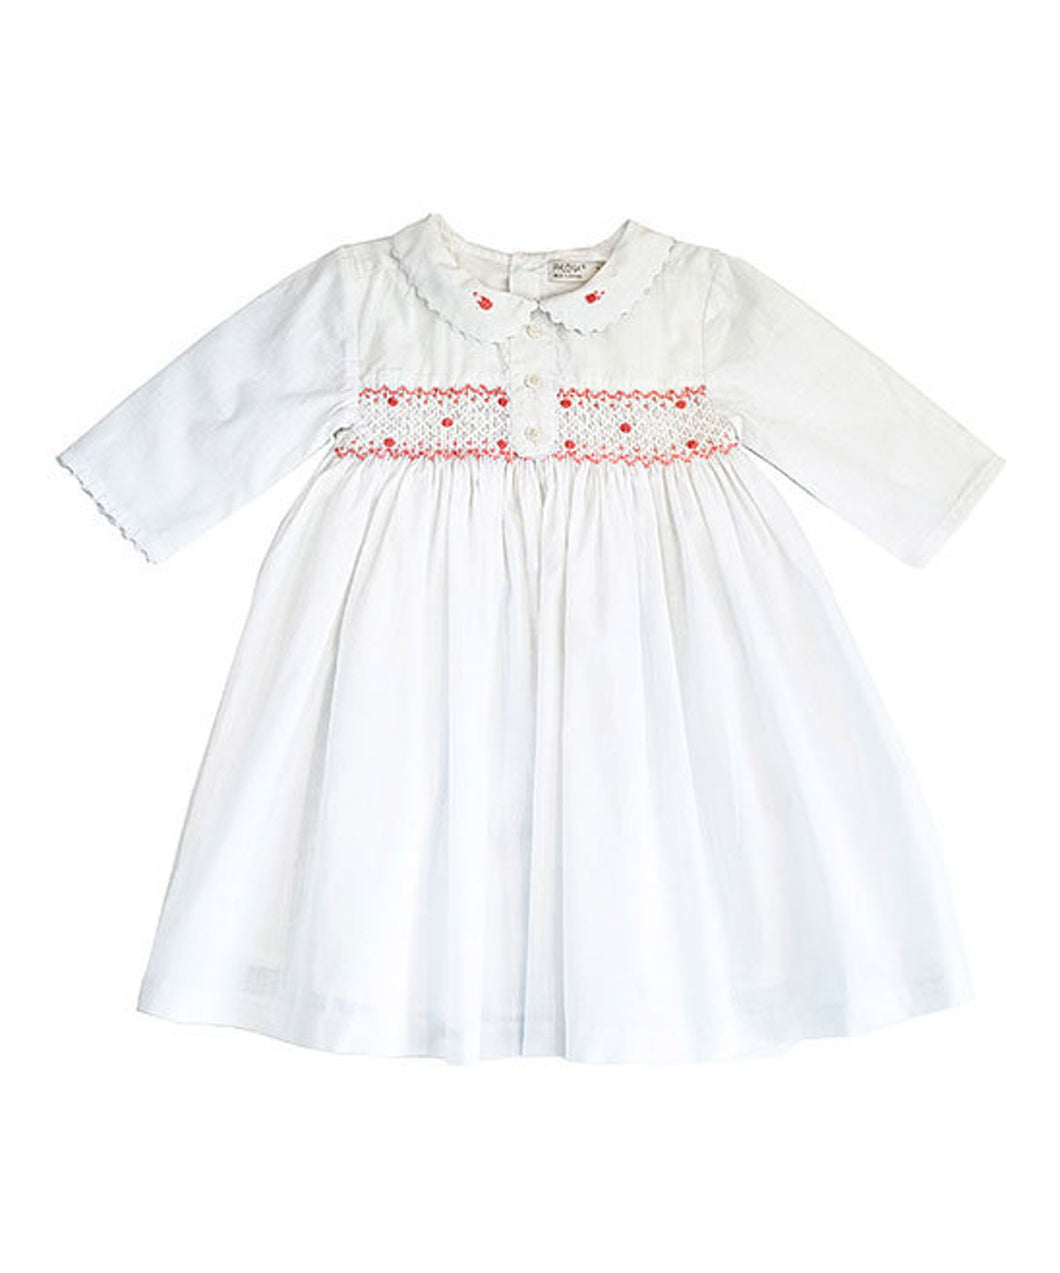 White Smocked Button-Front A-Line Dress Ruffle Long Sleeve Dress - Infant, Toddler & Girls